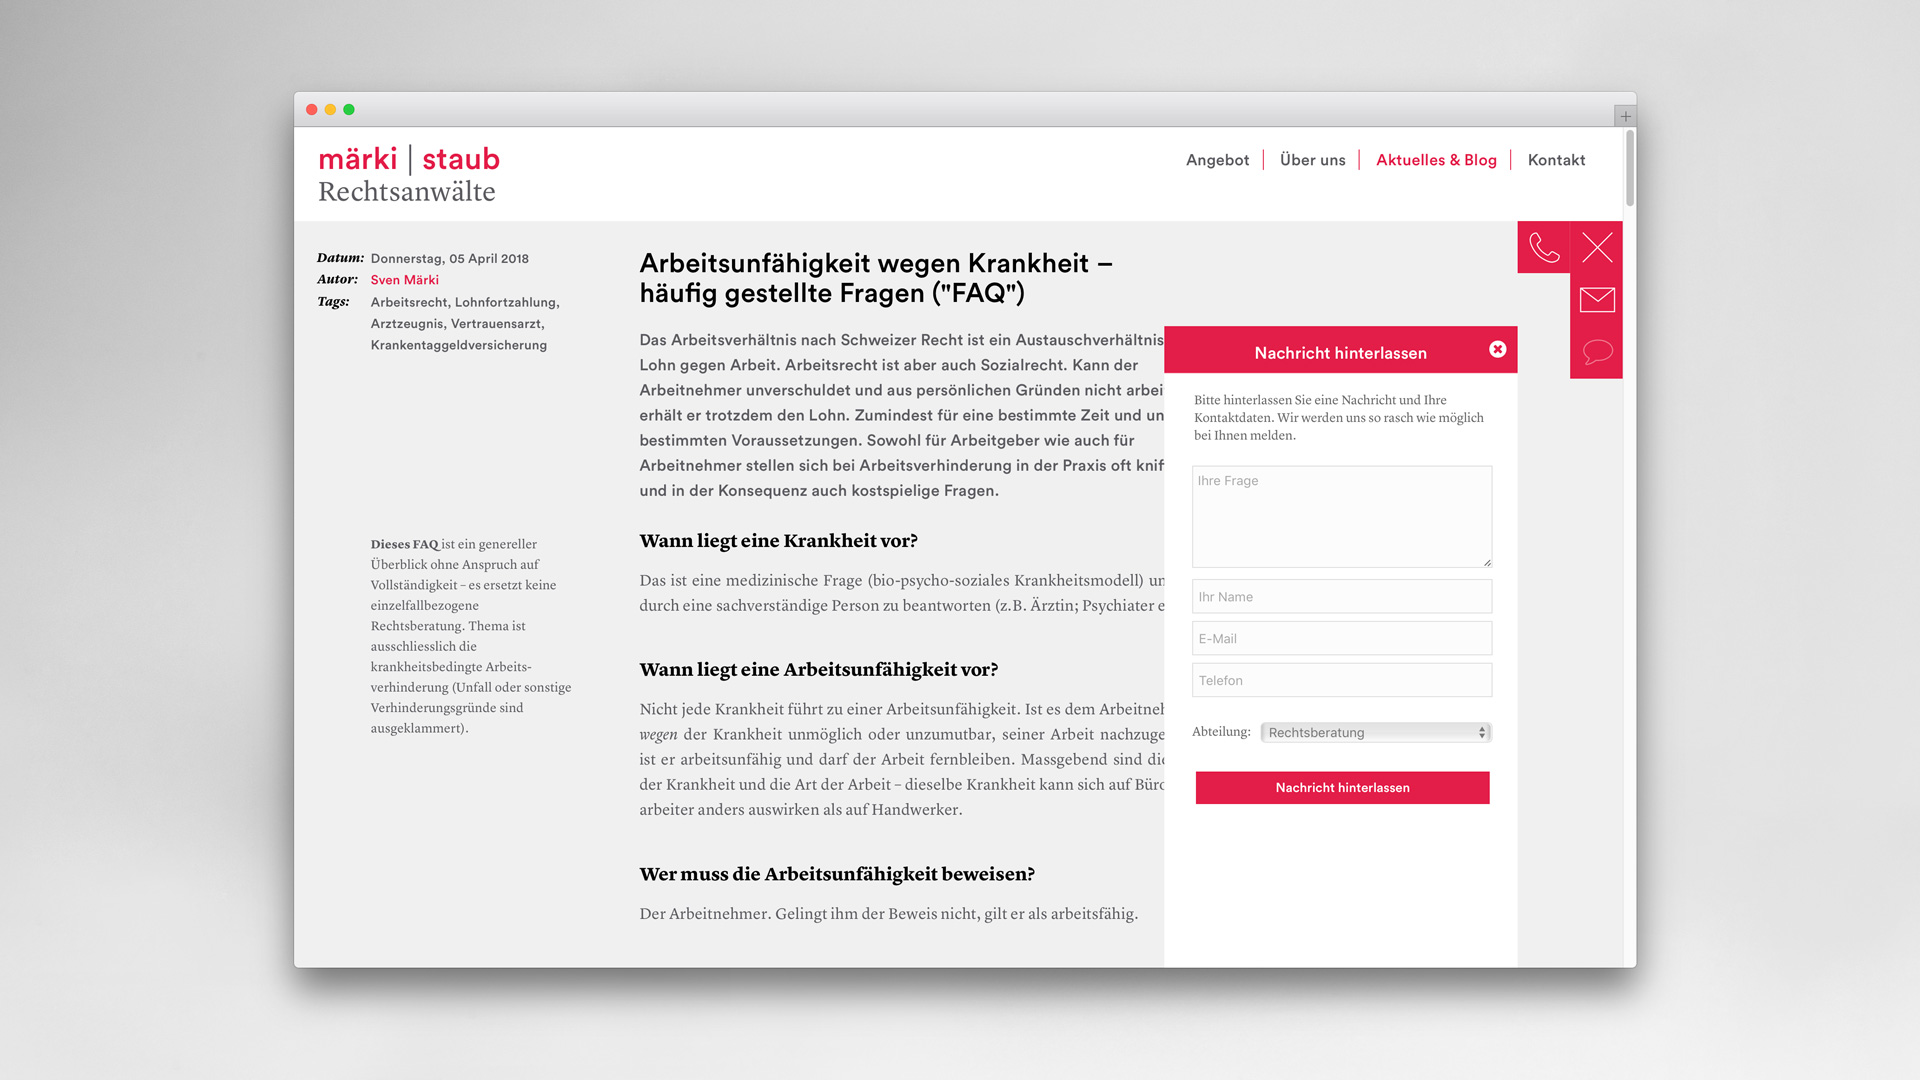 l'équipe [visuelle] – Grafik Agentur Emmenbruecke Luzern – Corporate Design, Webseite, Logo für die märki | staub Rechtsanwälte AG aus Herzogenbuchsee